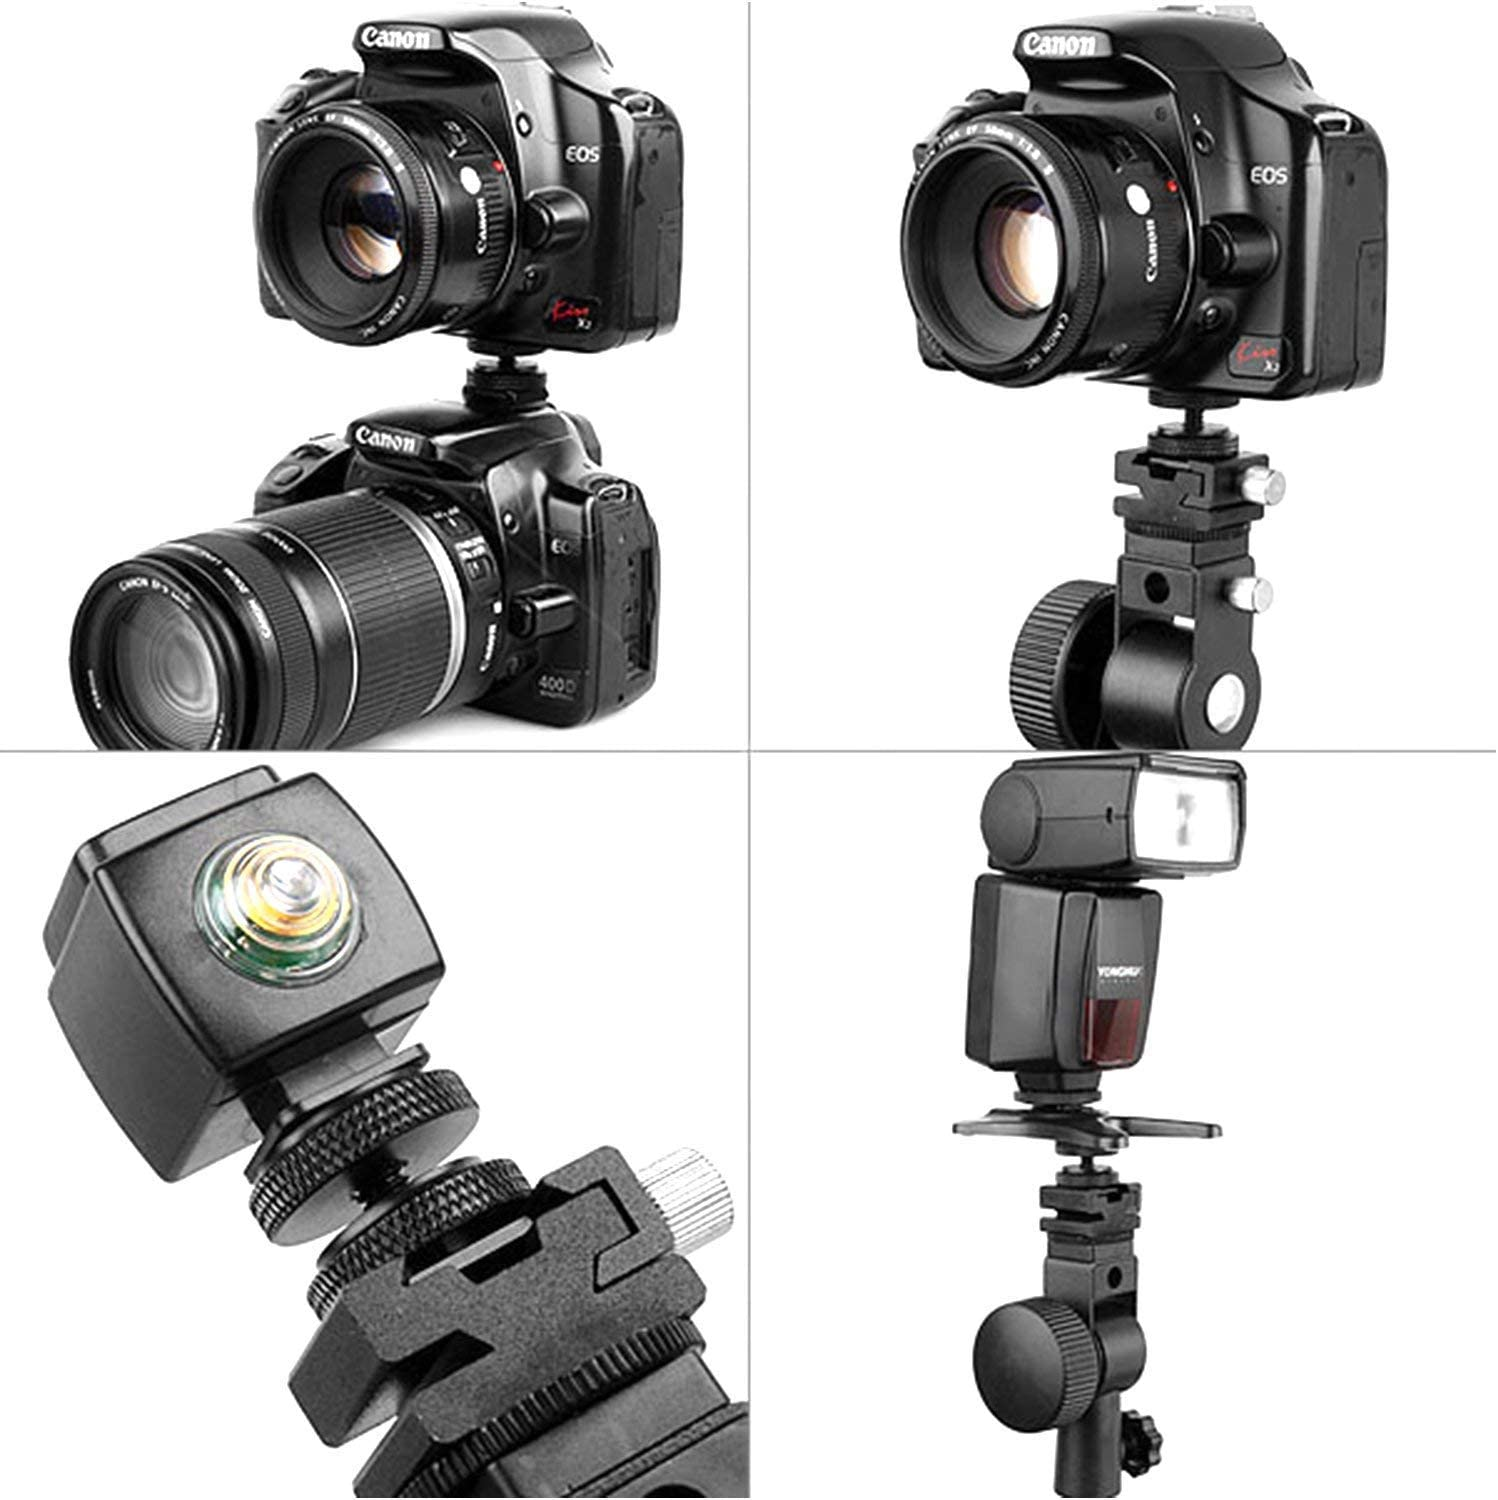 Semoic 5 Pack 1//4 inch Flash Hot Shoe Mount Adapter to Tripod Screw Converter Adapters with Double Nuts for DSLR Camera Rig Monitor LED Video Light